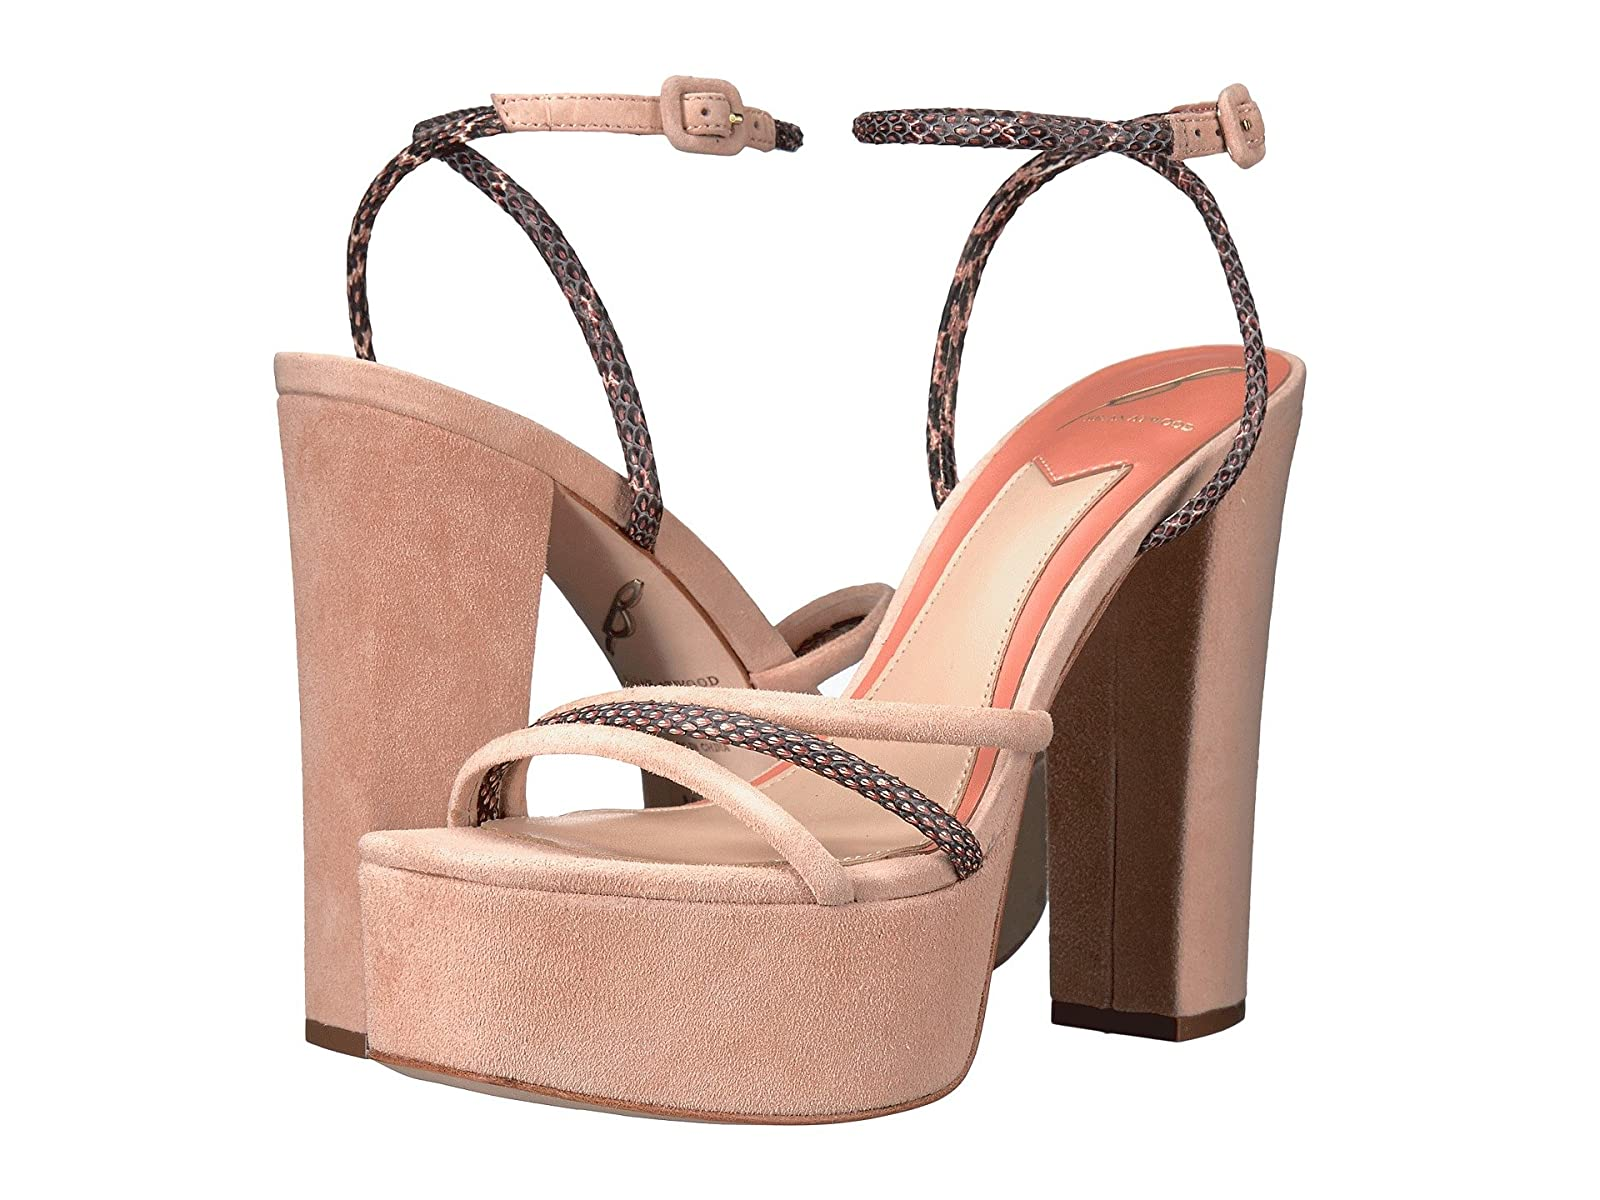 B Brian Atwood GigiCheap and distinctive eye-catching shoes